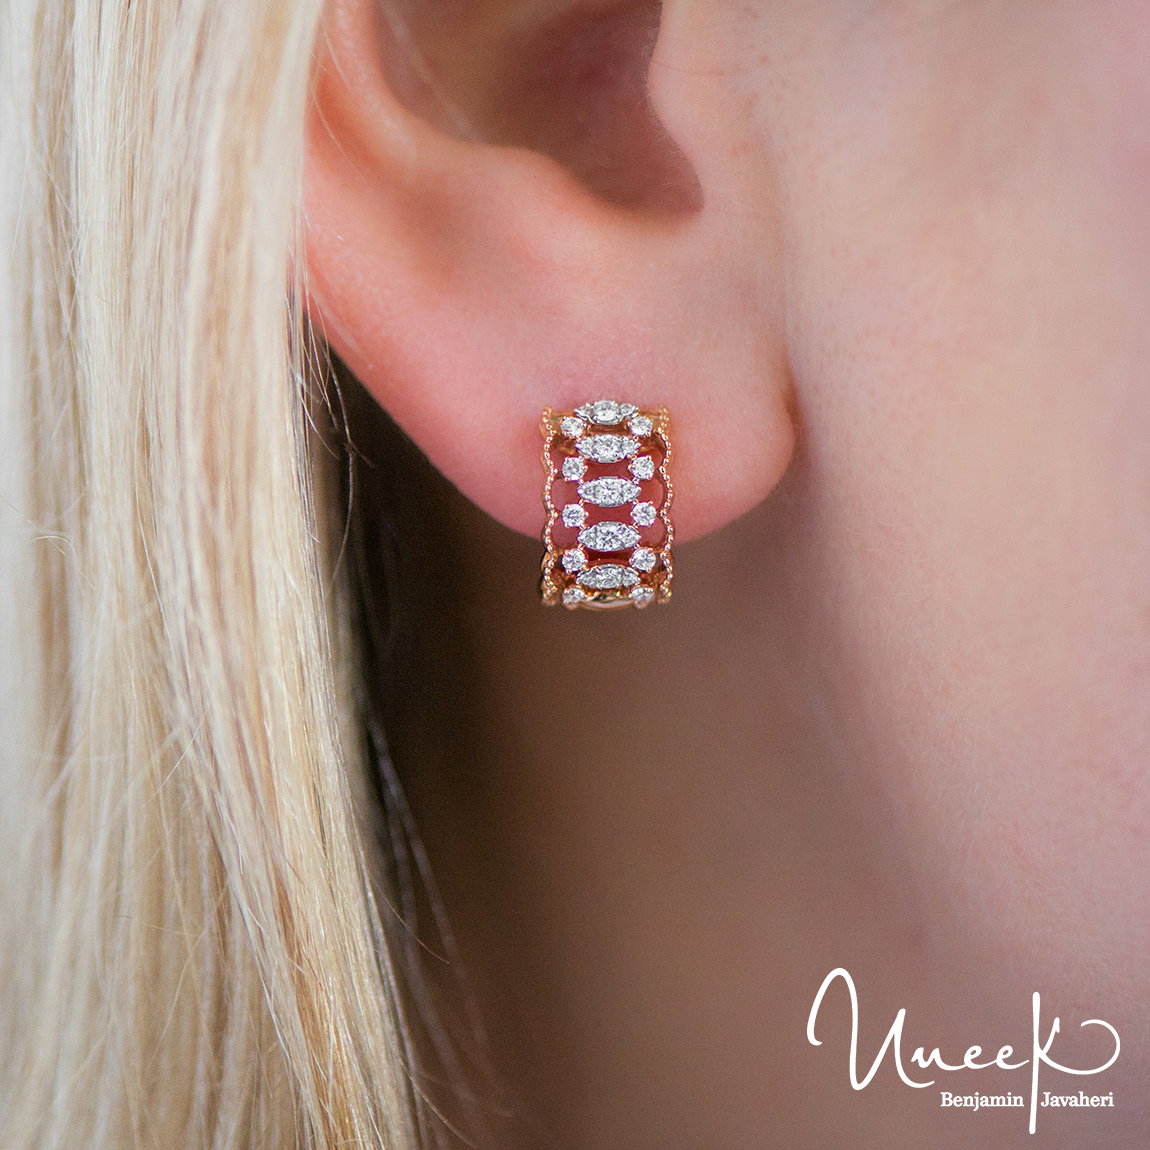 Do You Hear What I \'Ear\' - Our Top Earring Style Picks for the Holidays